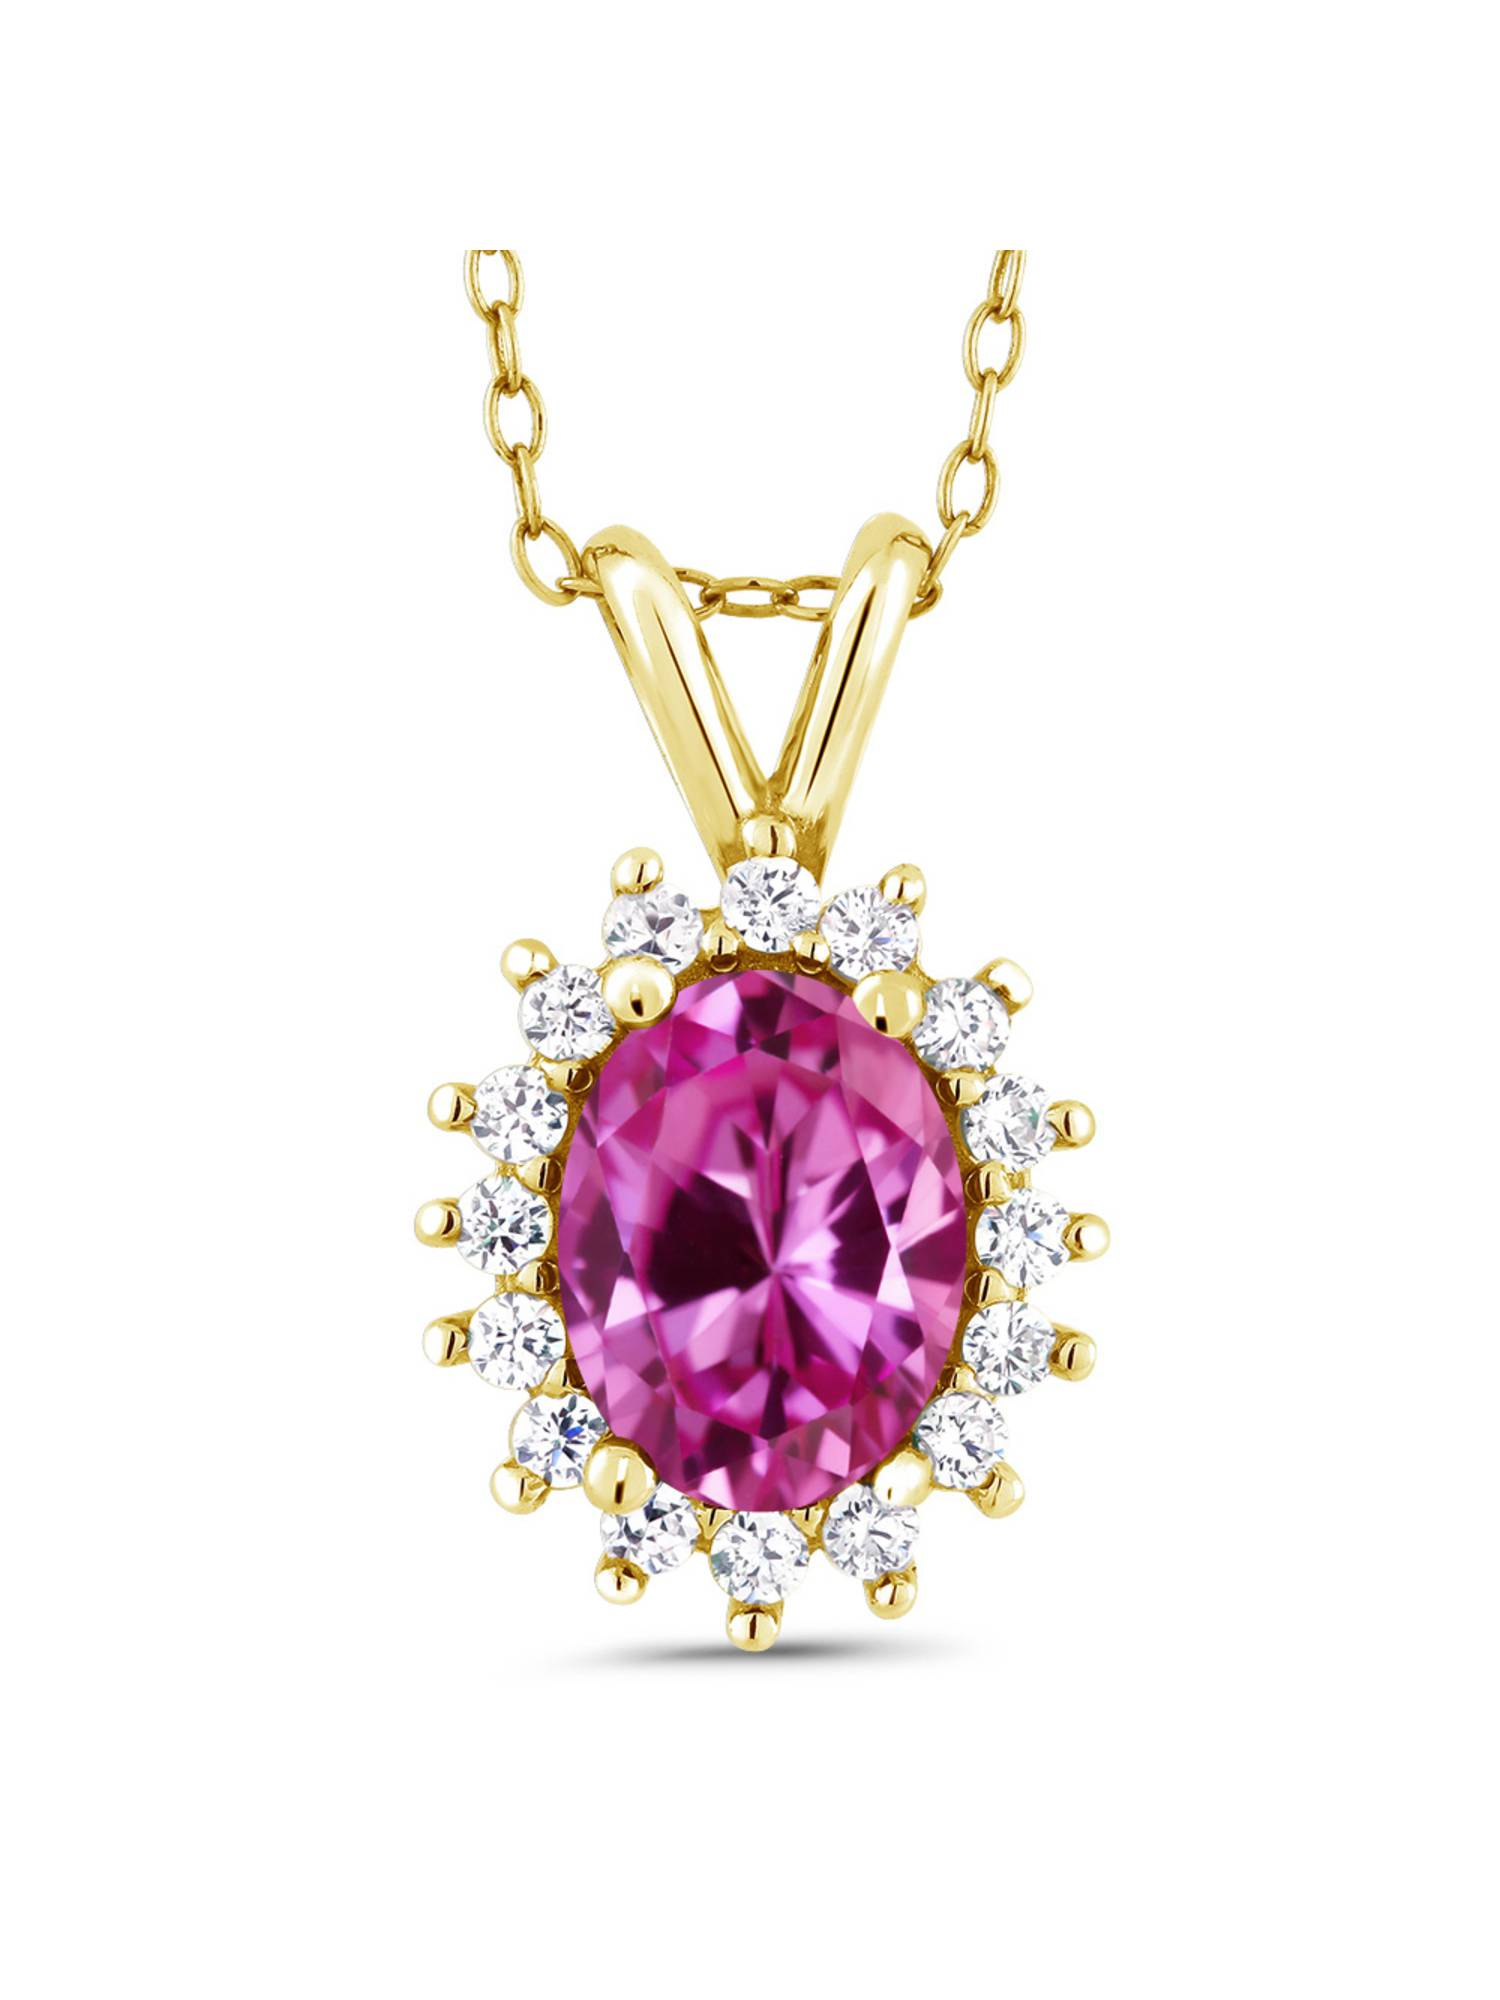 1.89 Ct Oval Pink Created Sapphire 14K Yellow Gold Pendant by